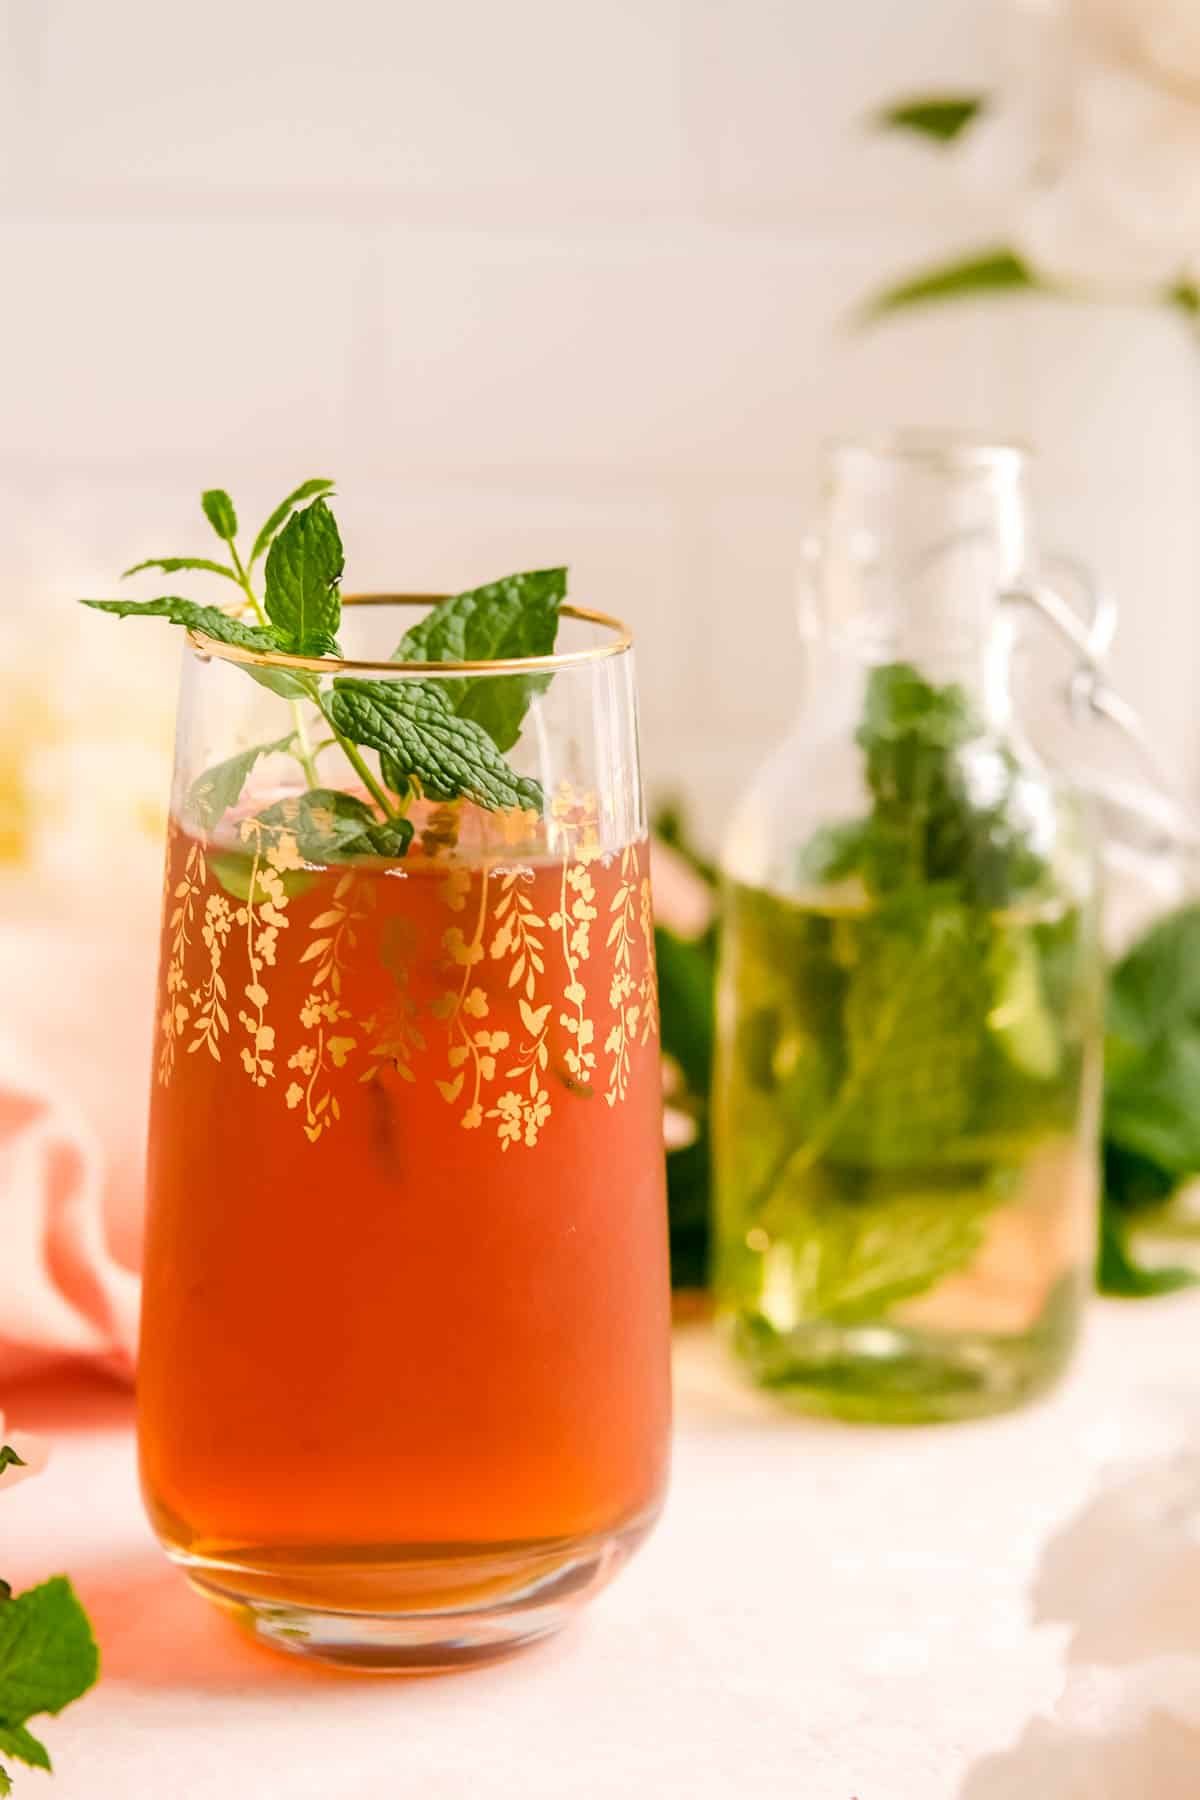 a glass of iced tea with a partial bottle of mint syrup in the background.